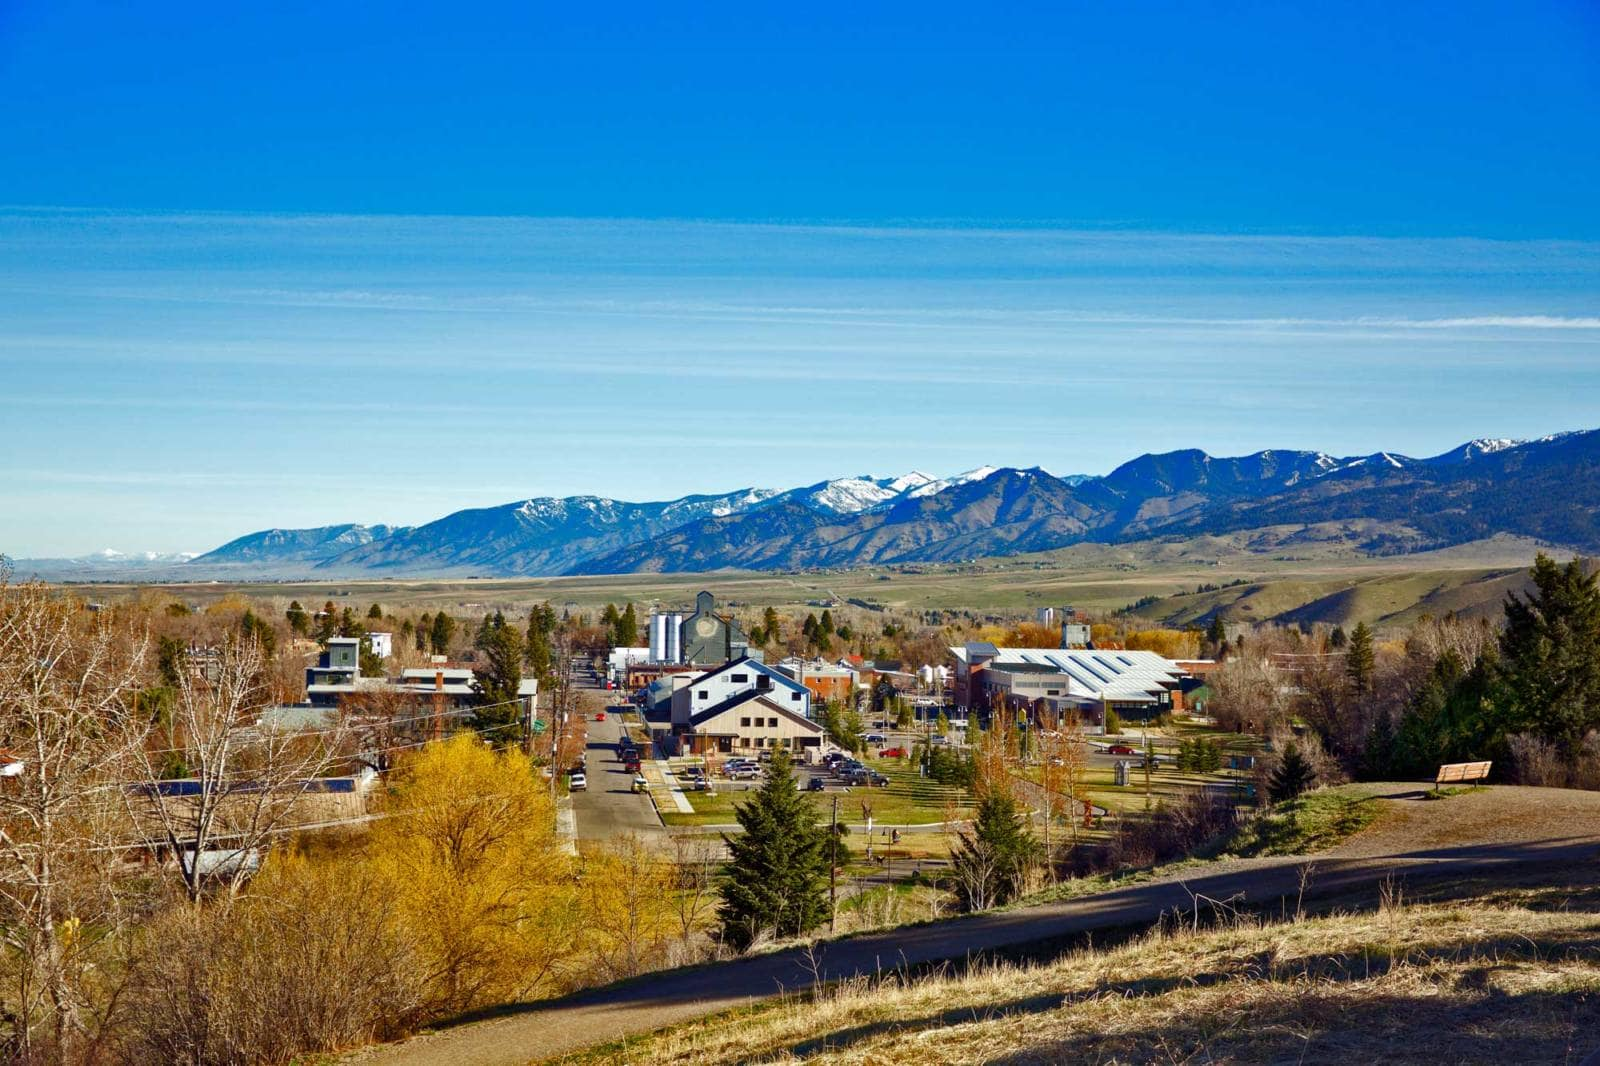 bozeman montana with bridger mountains in background